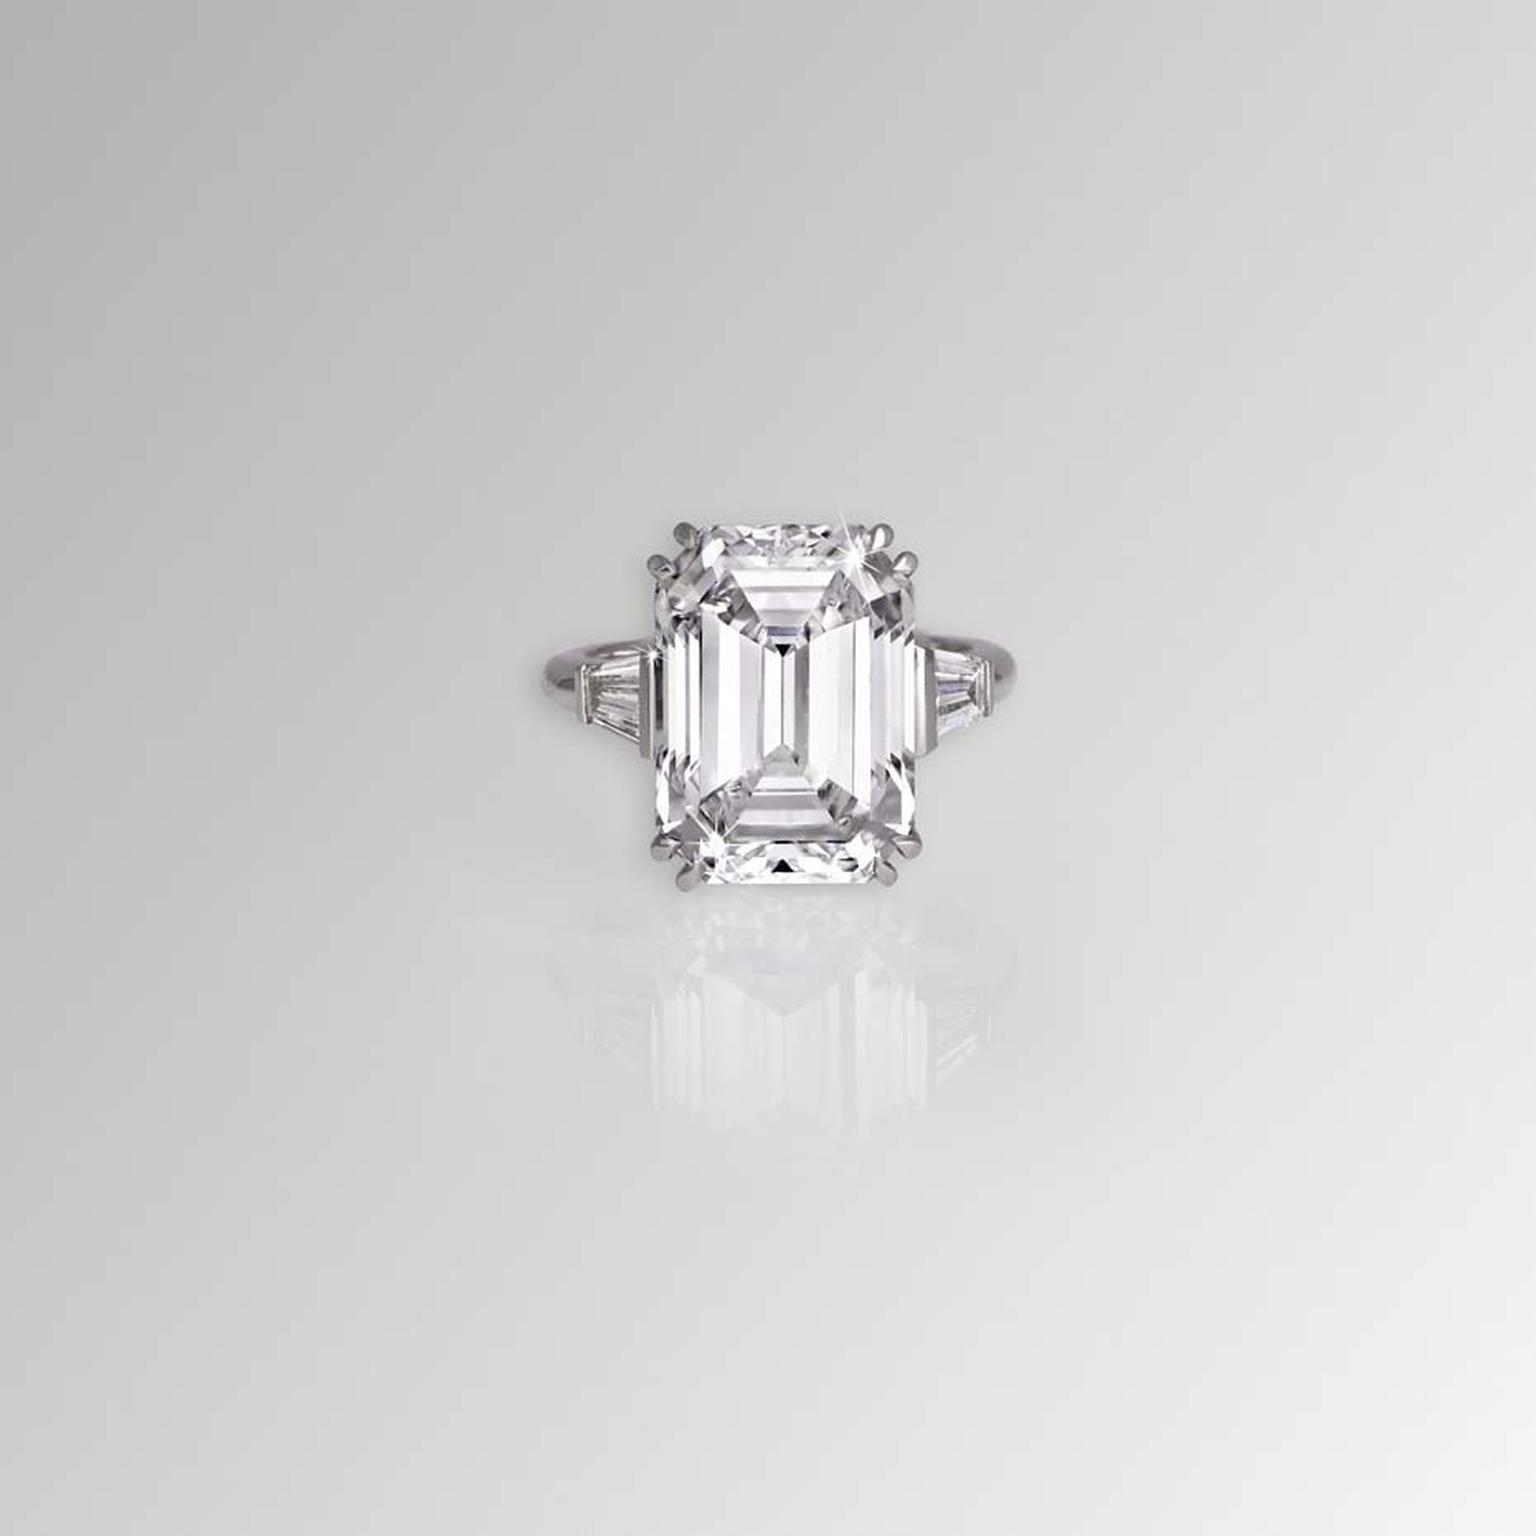 David Morris emerald cut white diamond ring with tapered baguette shoulders, set in 18ct white gold.